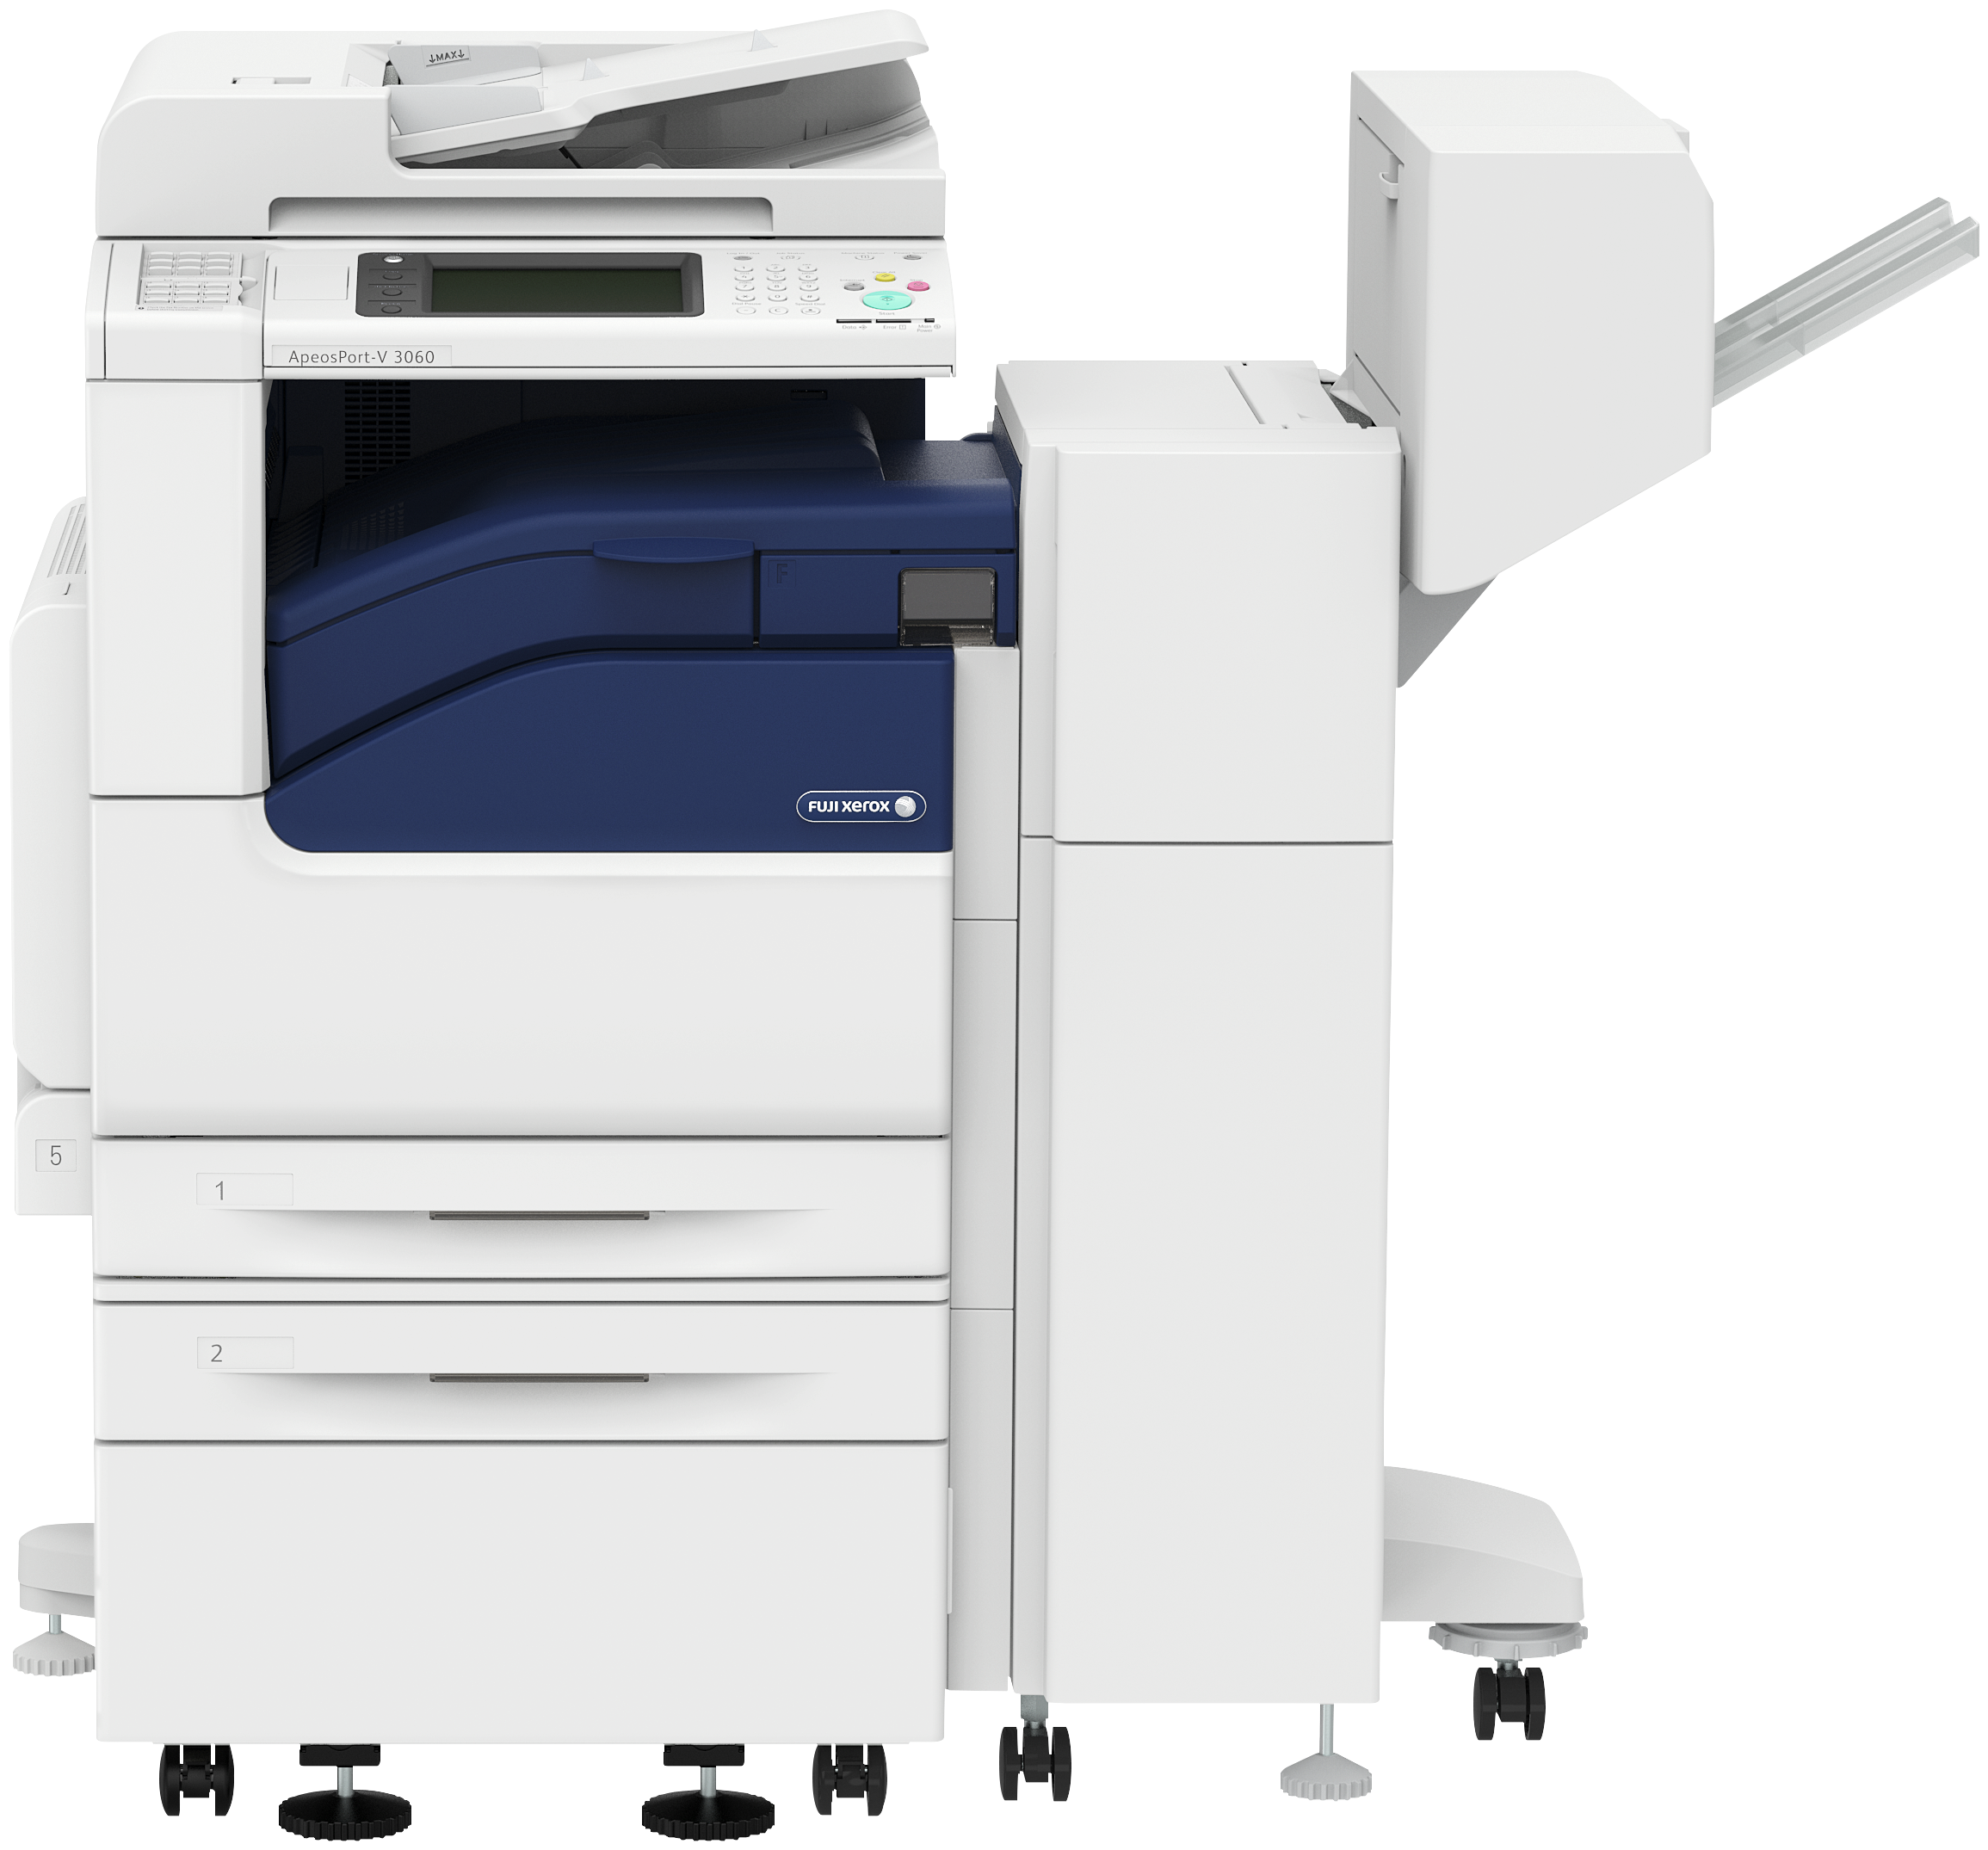 Fuji_Xerox_DocuCentre-V2060_2Trays_Cabinet_Finisher